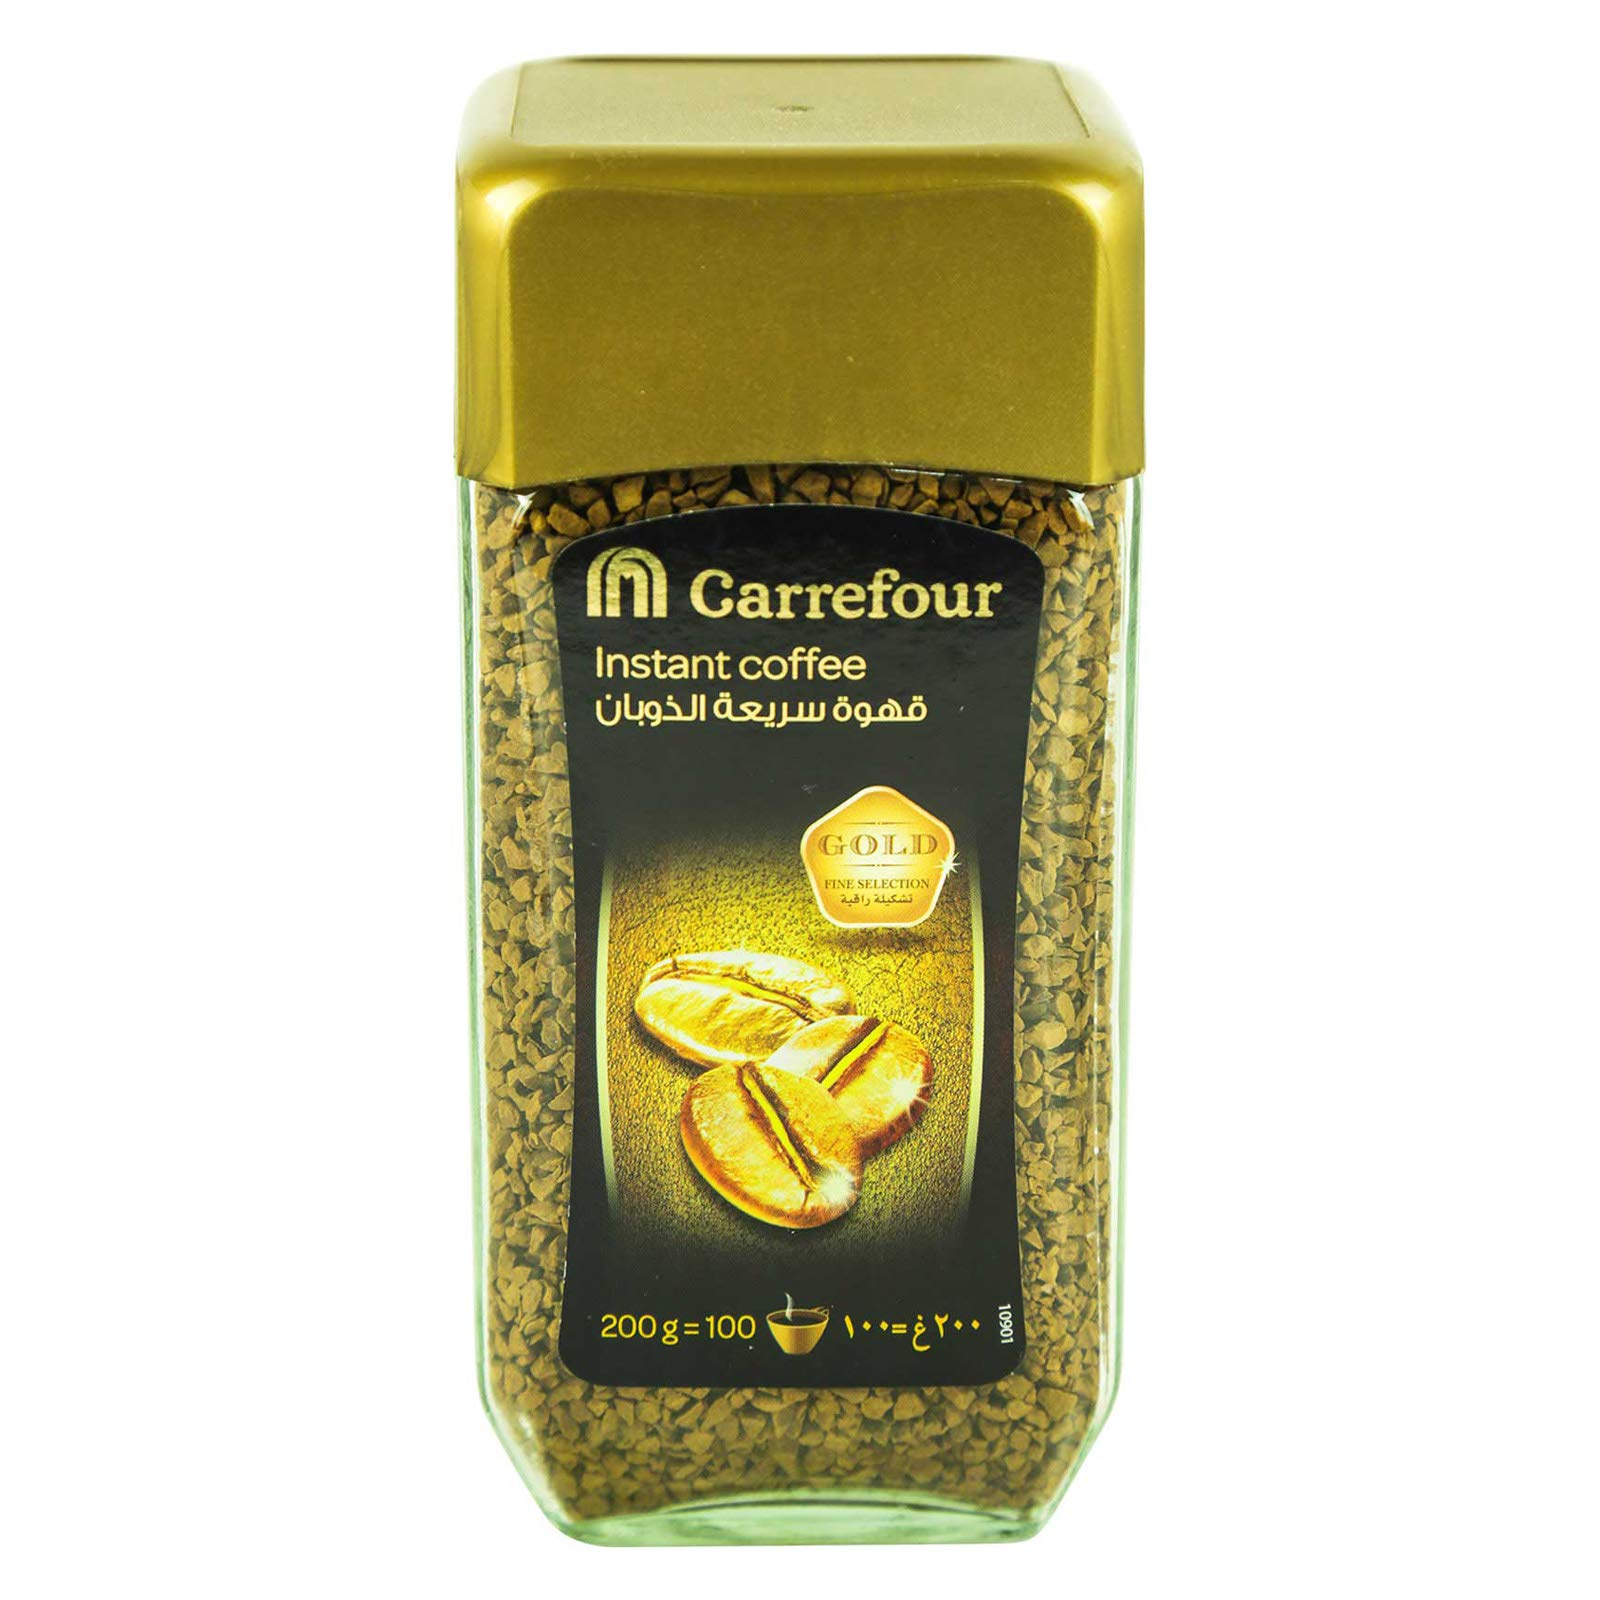 Carrefour Gold Instant Coffee 200 Gm Price In Uae Amazon